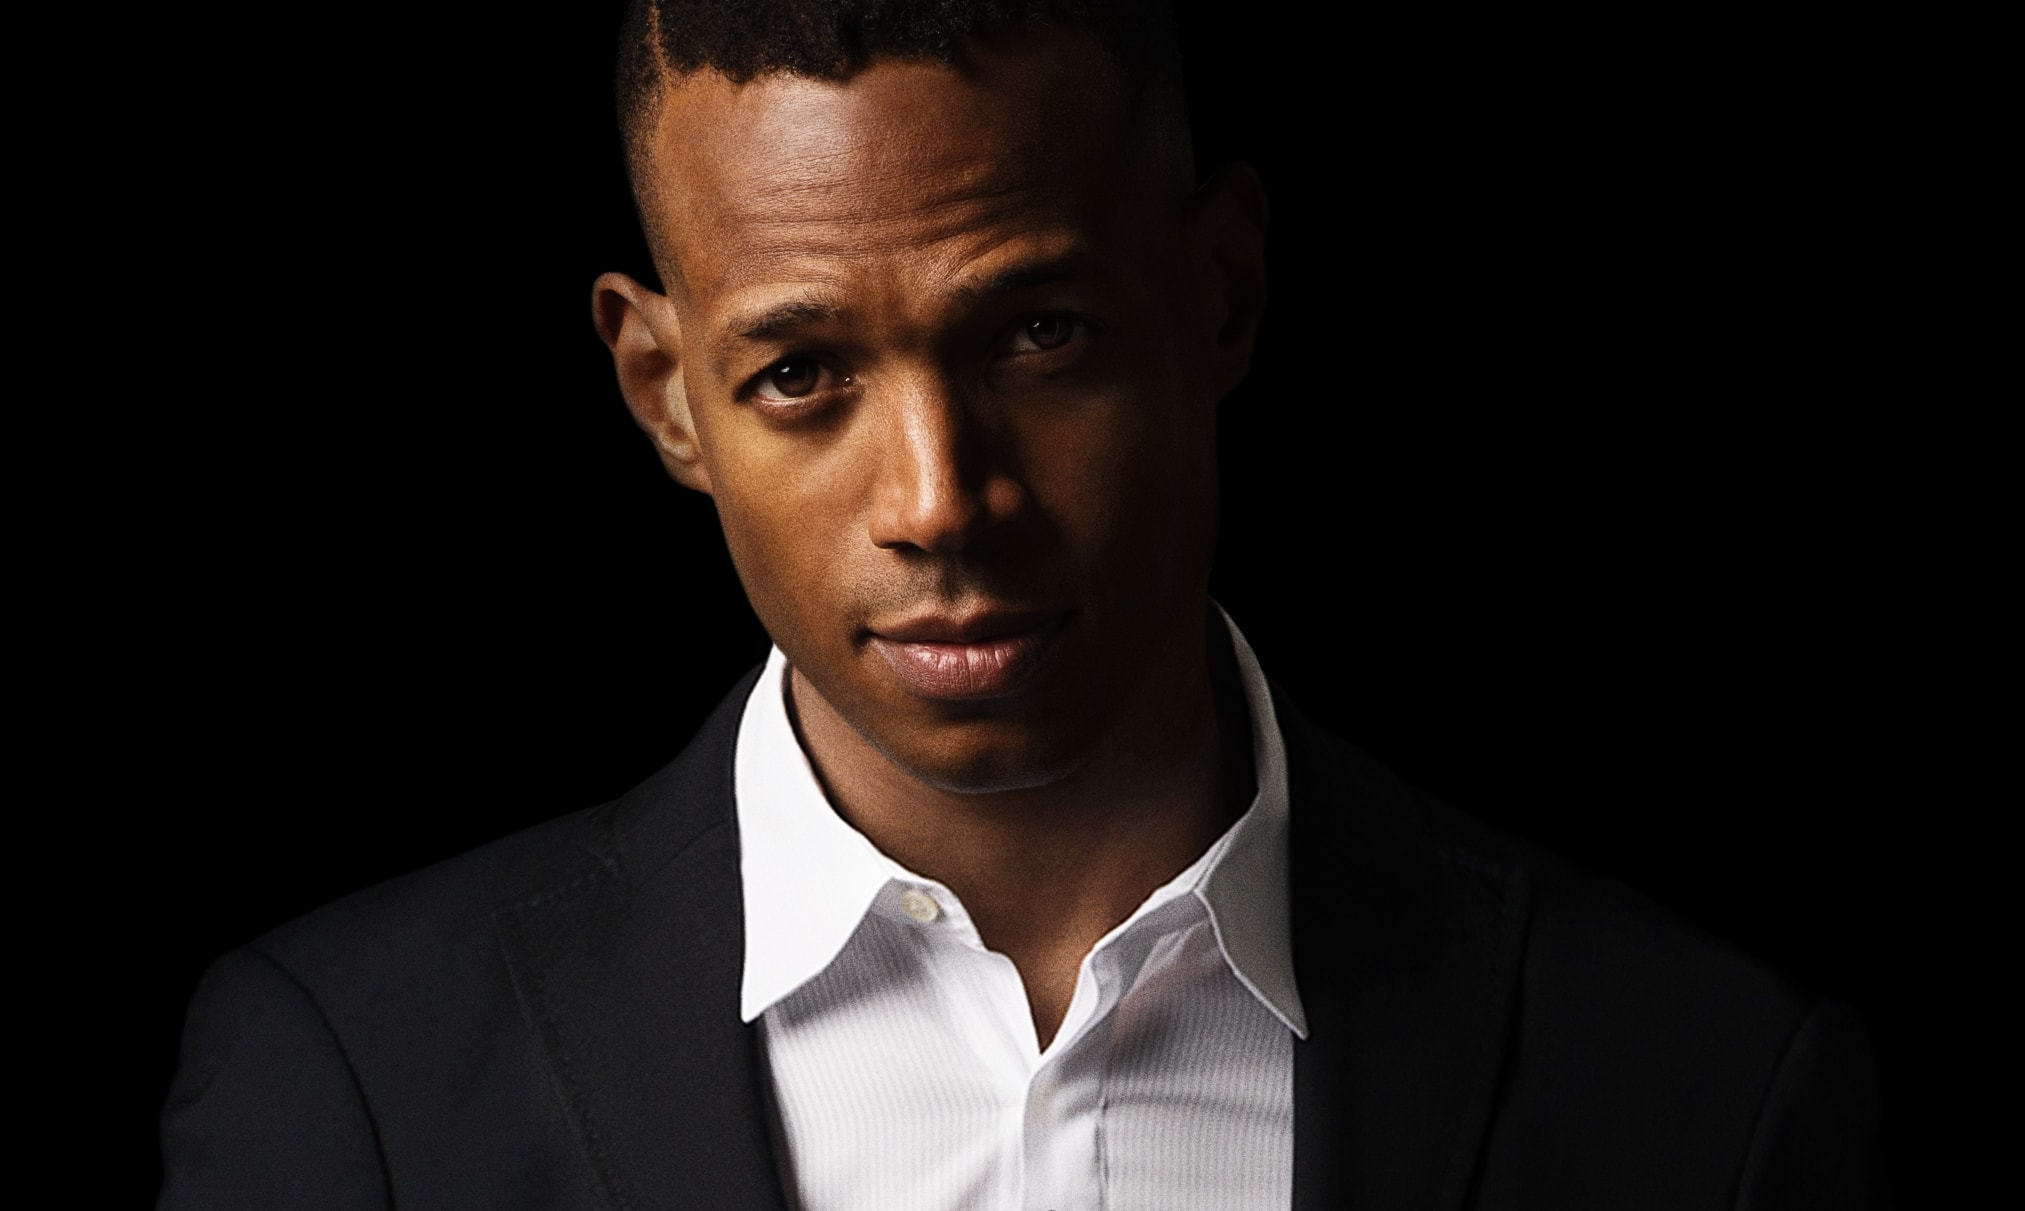 Marlon Wayans Desktop wallpaper